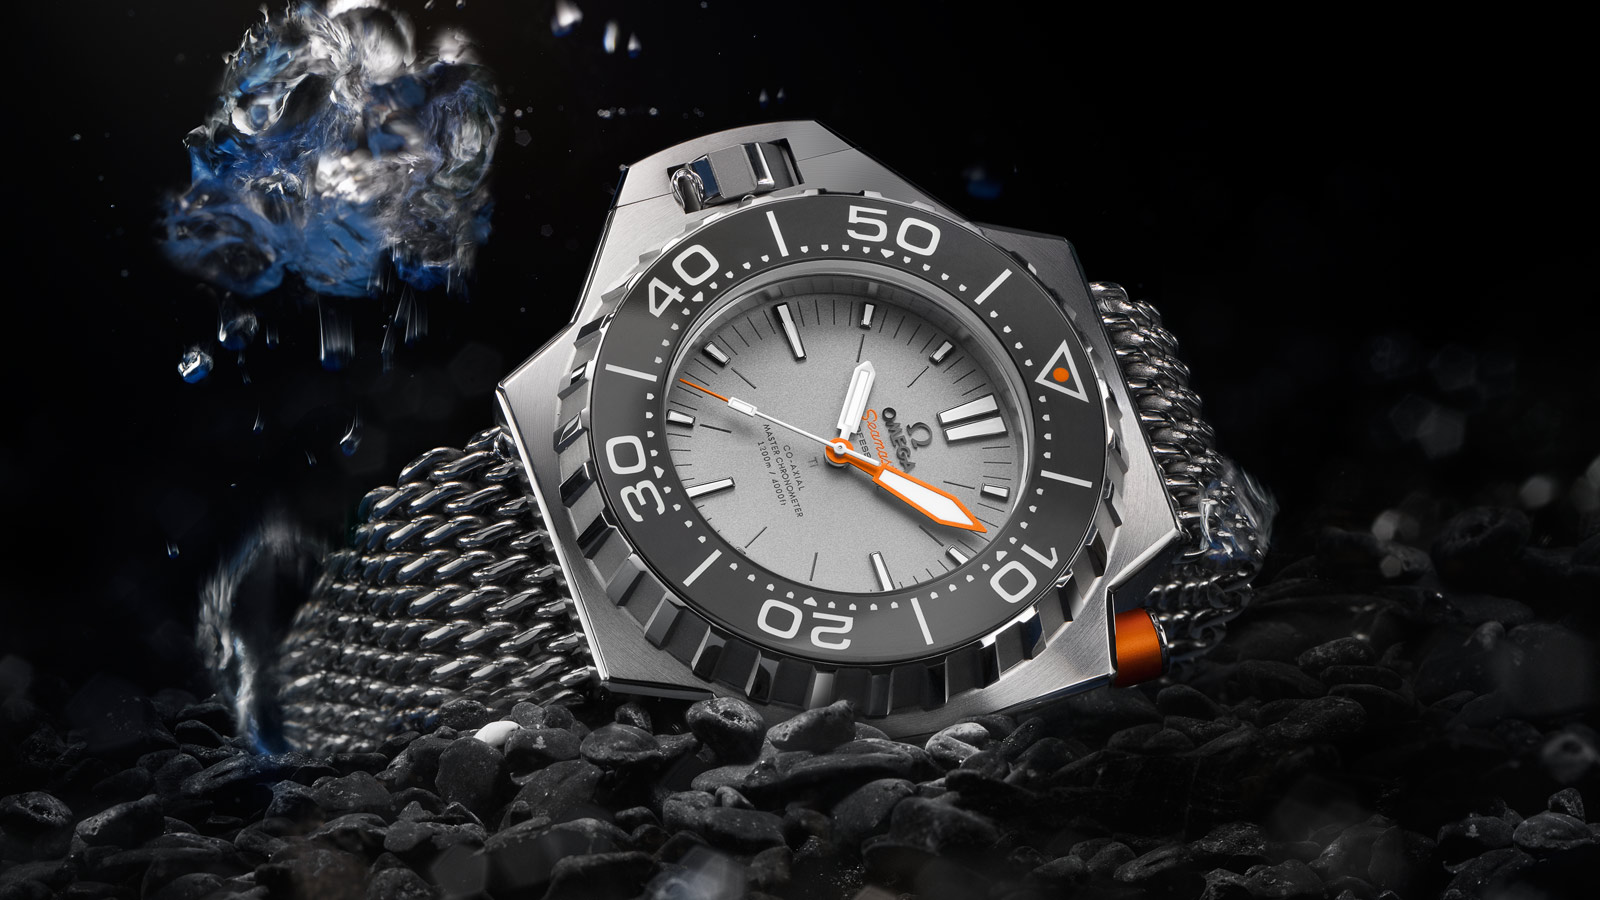 Seamaster PLOPROF 1200M Ploprof 1200M Omega Co‑Axial Master Chronometer 55 x 48 mm - 227.90.55.21.99.001 - Ver 1